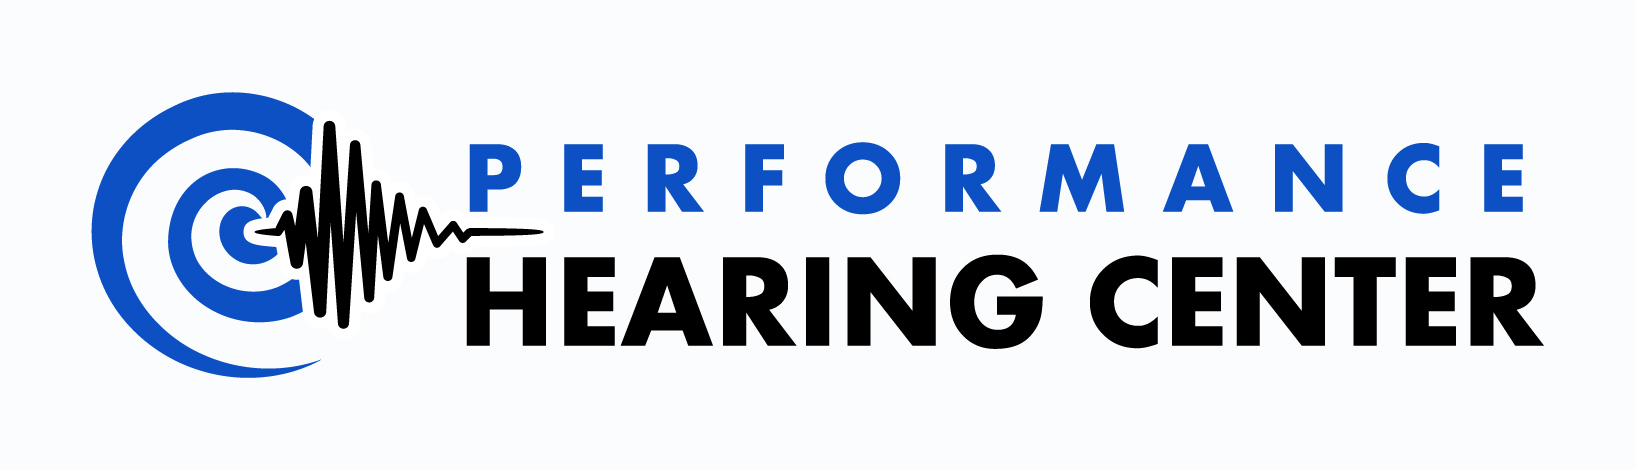 Performance Hearing Center - Winnetka logo